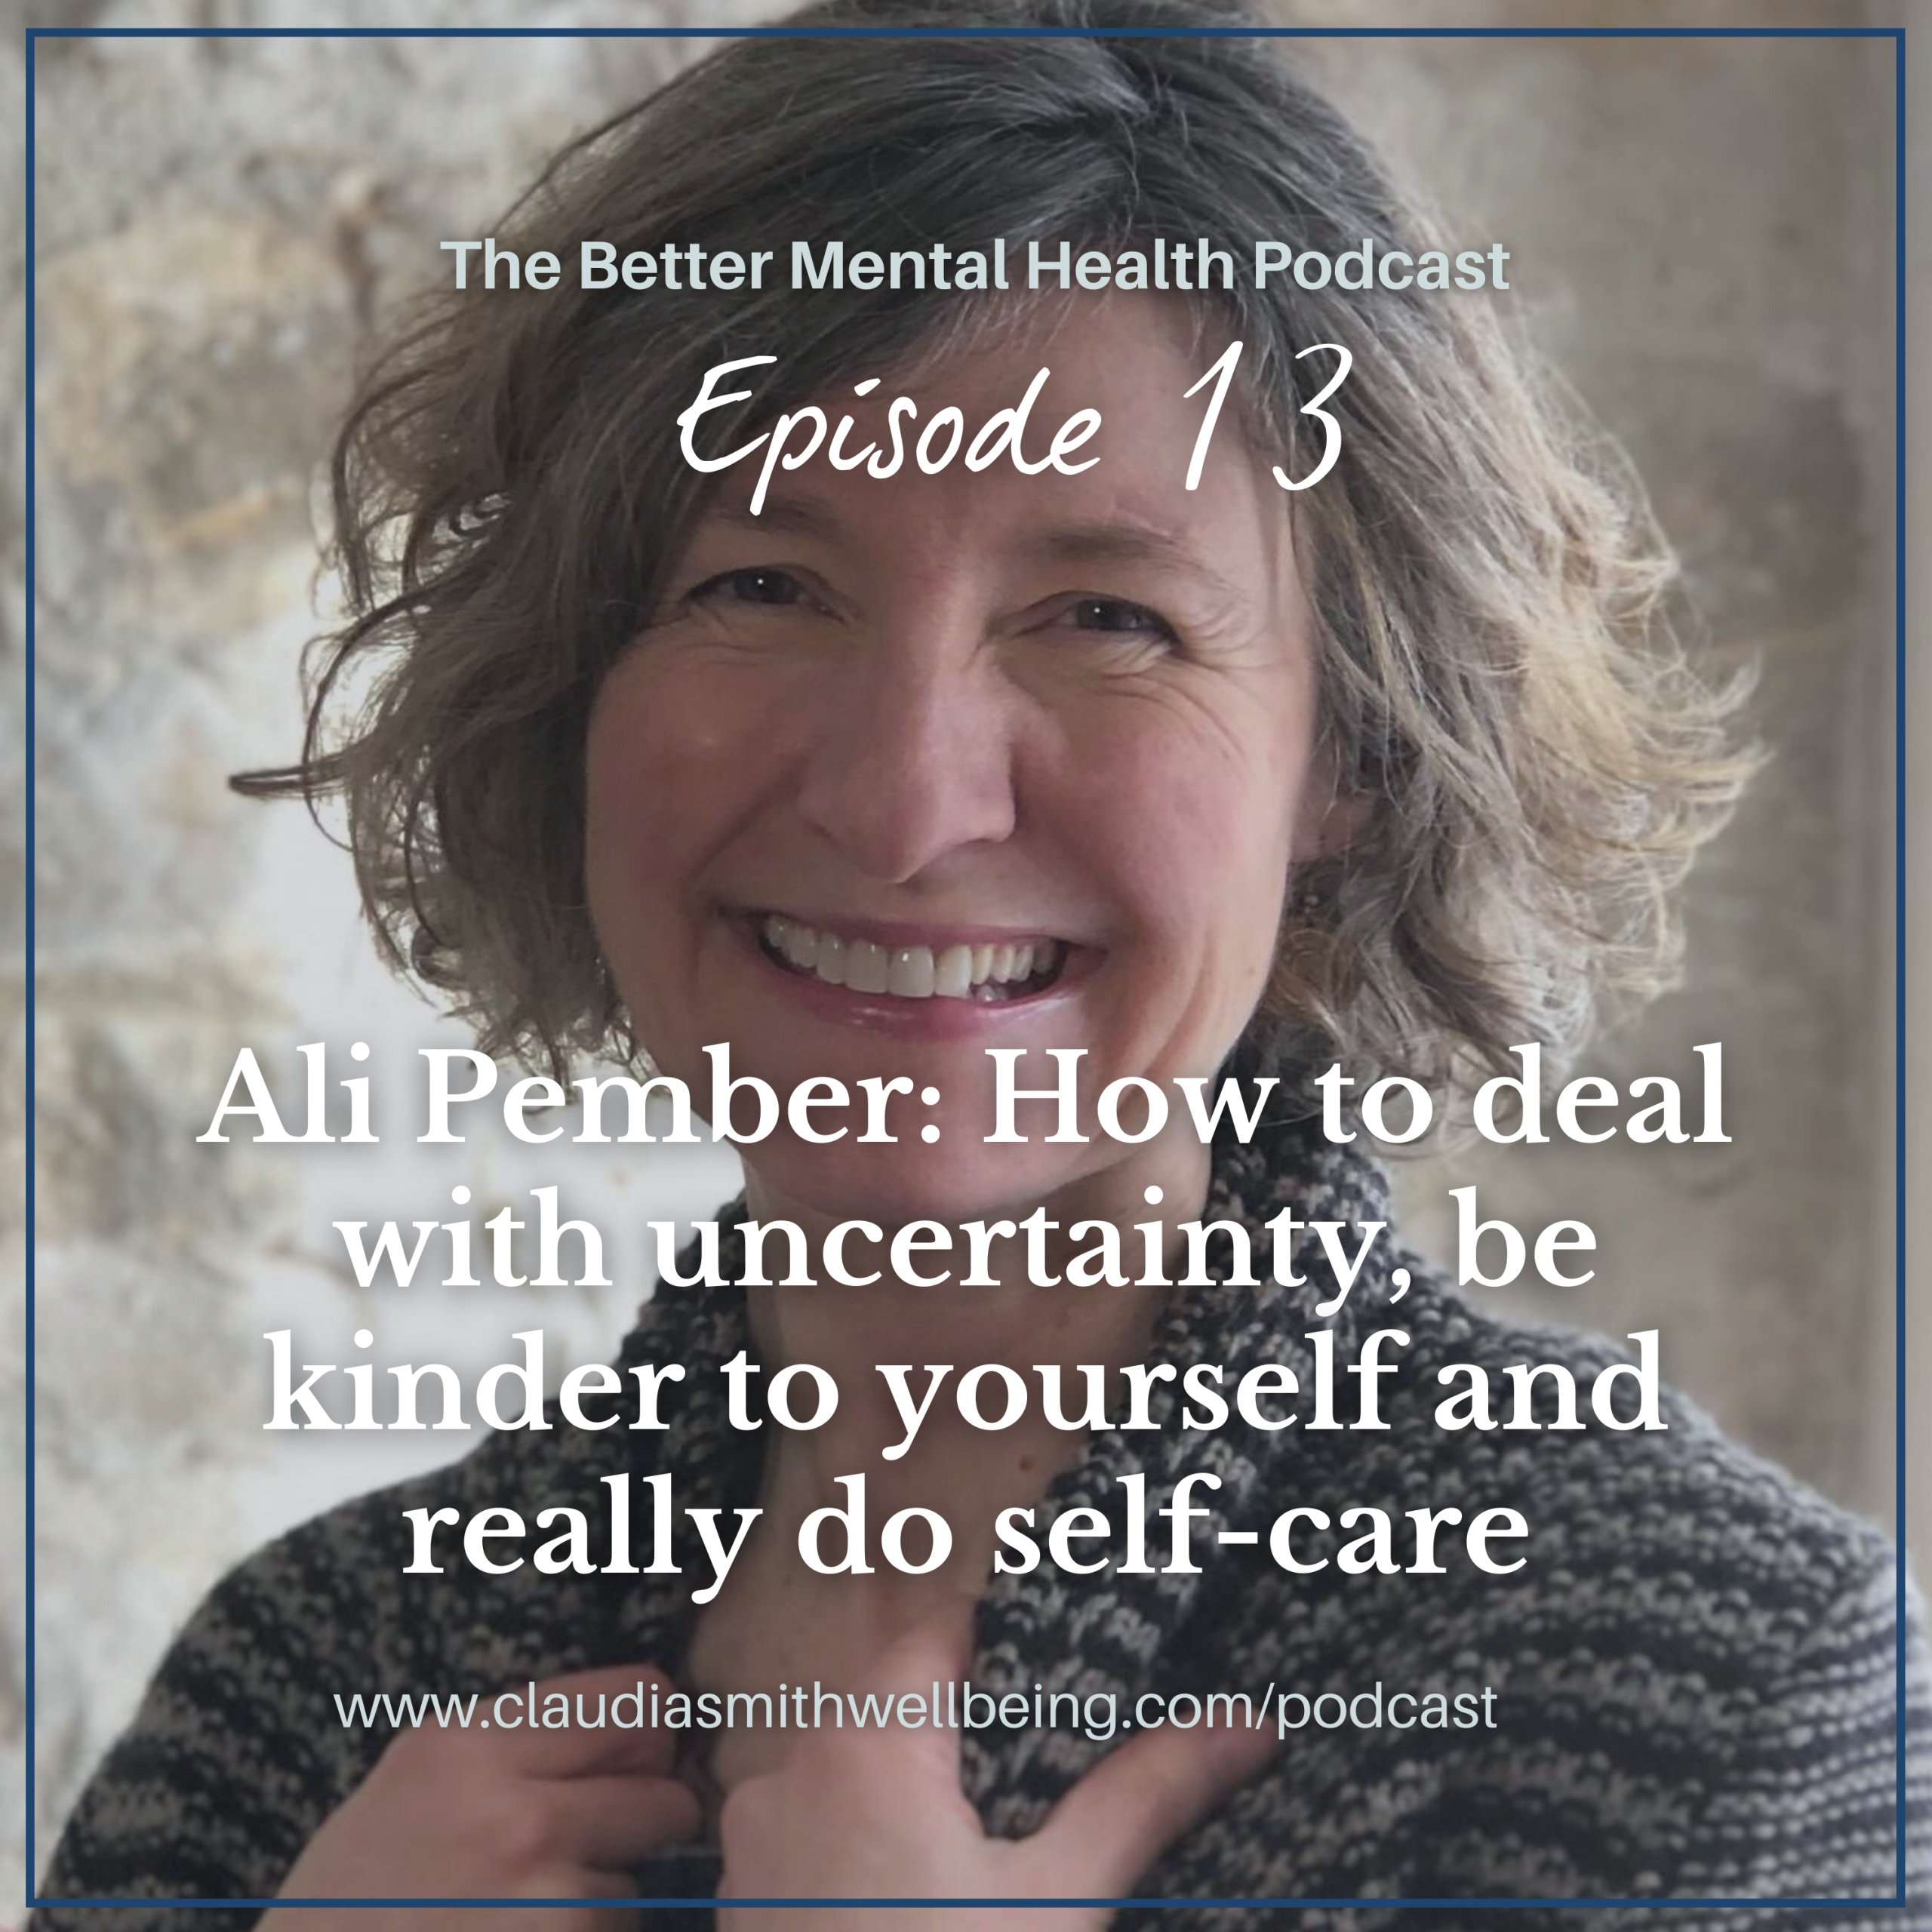 How to deal with uncertainty, be kinder to yourself and really do self-care with Ali Pember